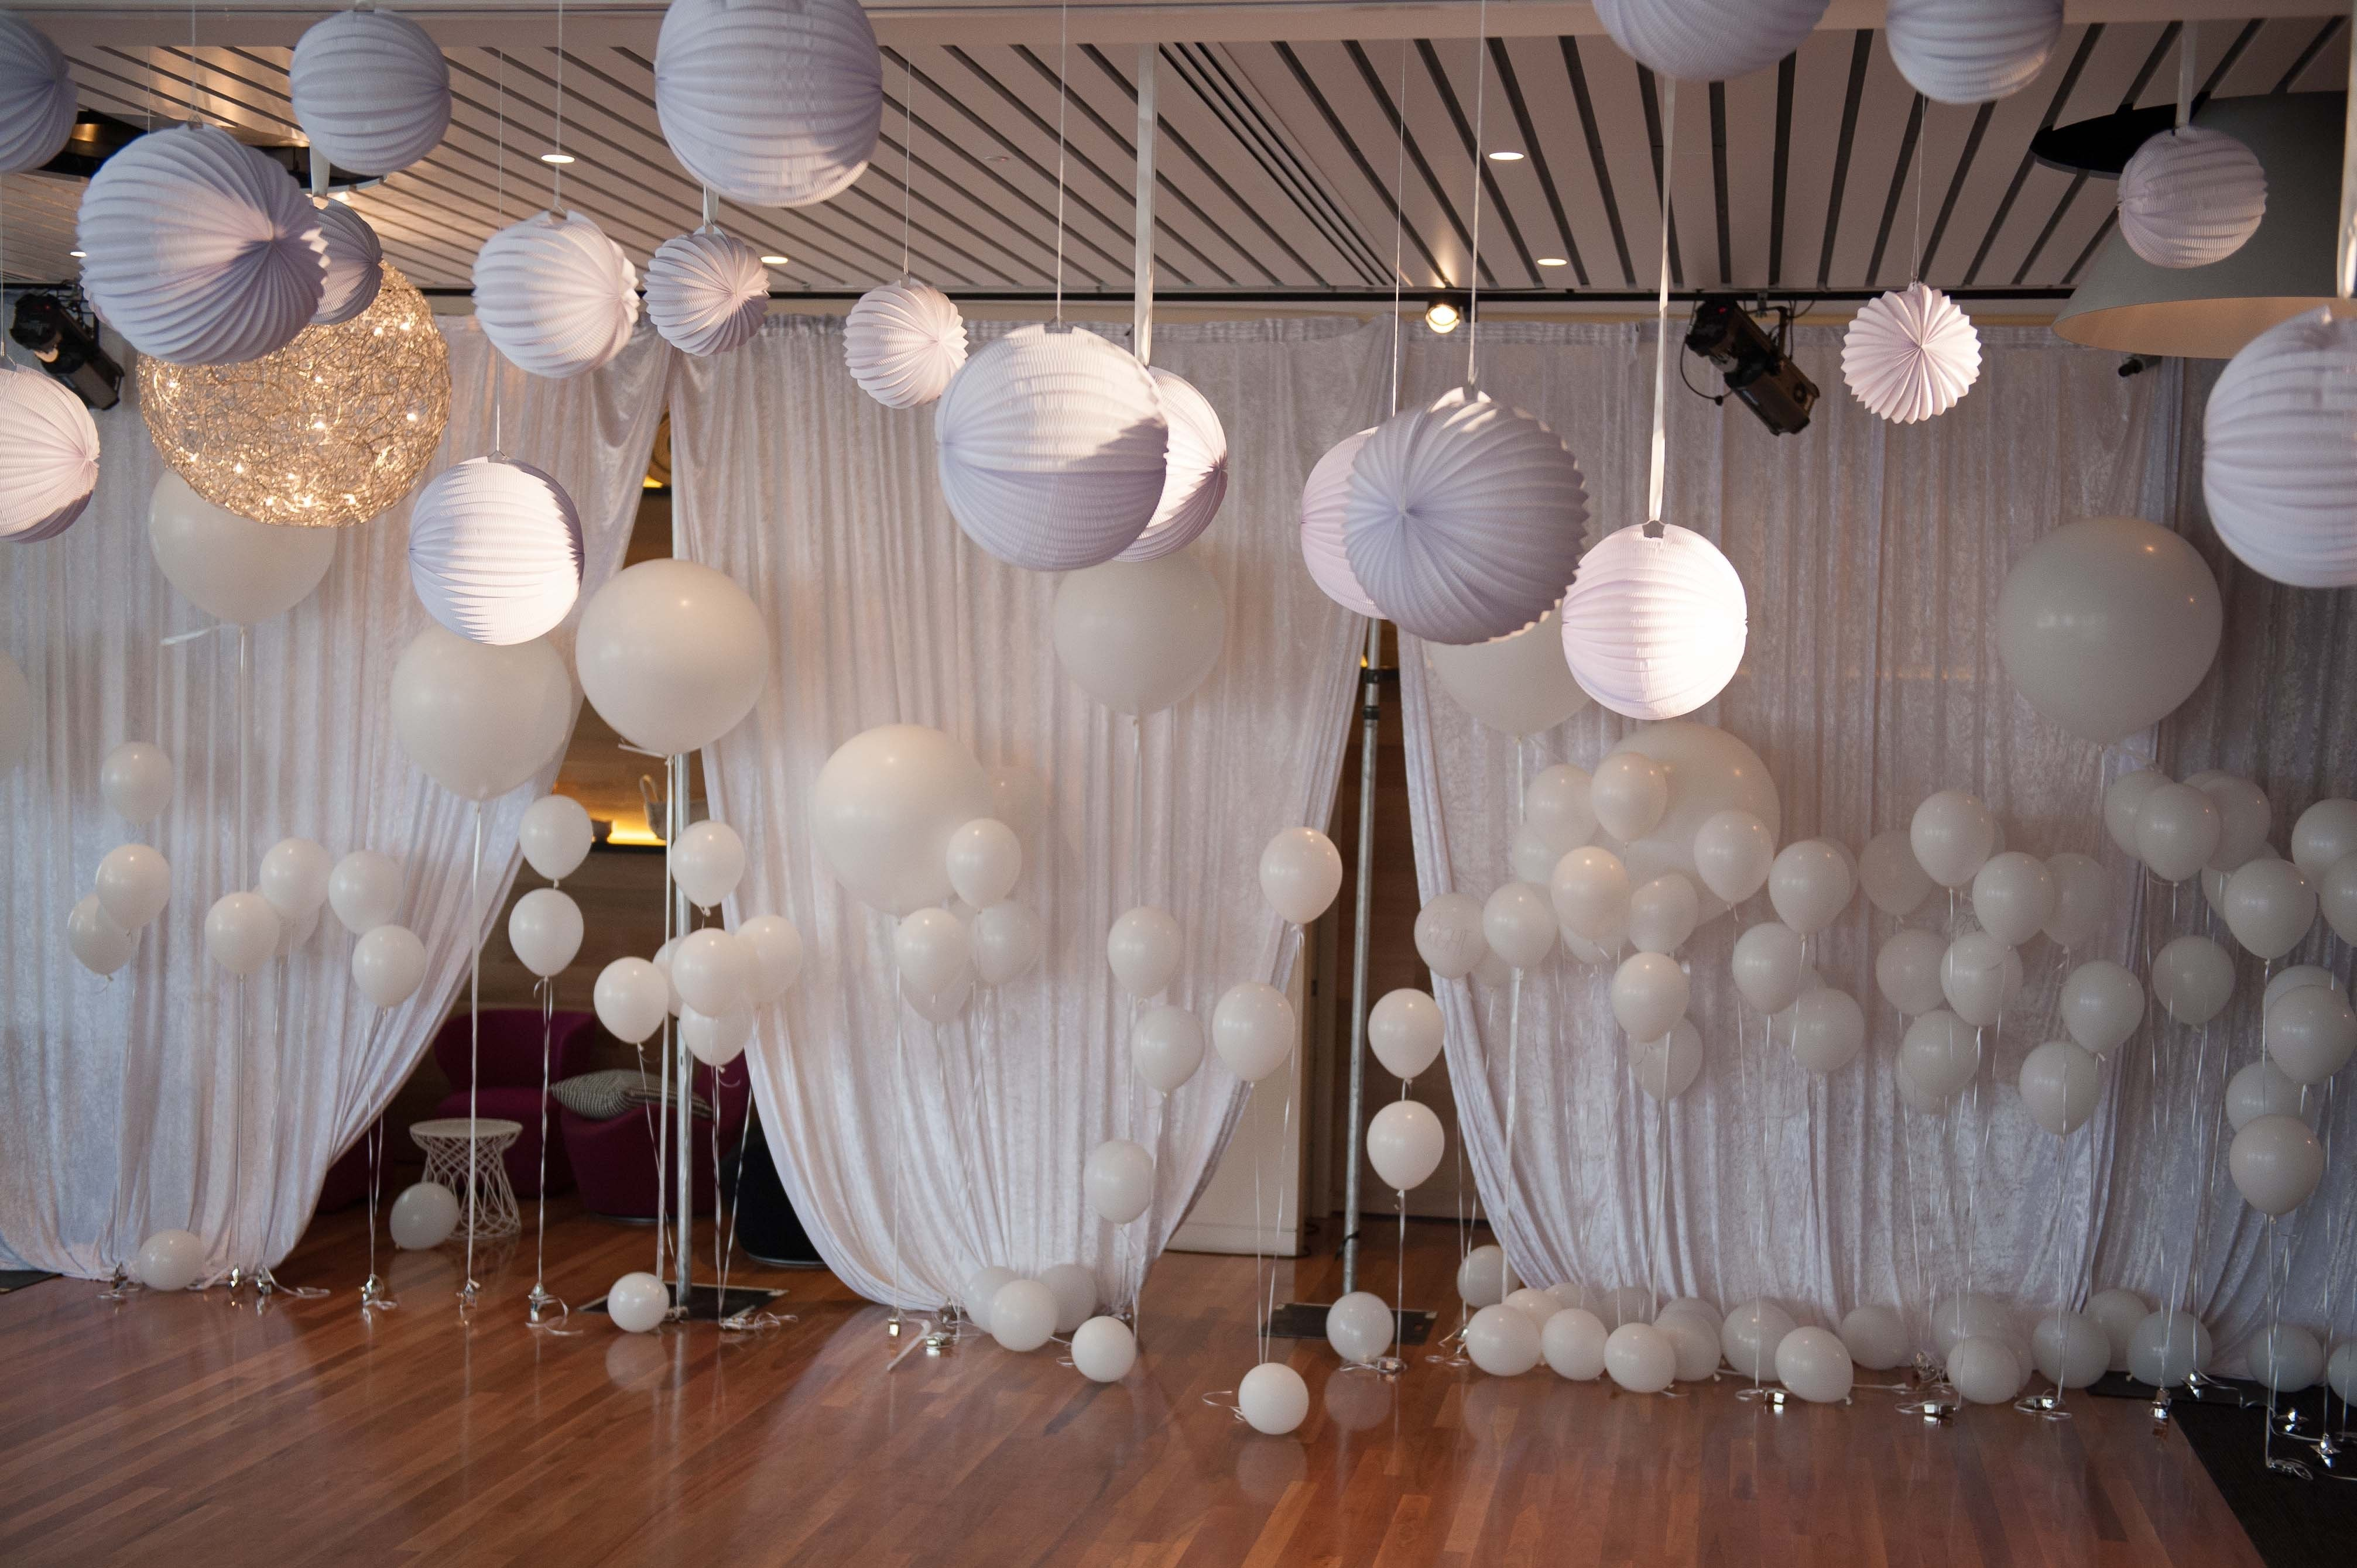 10 Wonderful All White Birthday Party Ideas white party archives parties 2 orderparties 2 order 2020